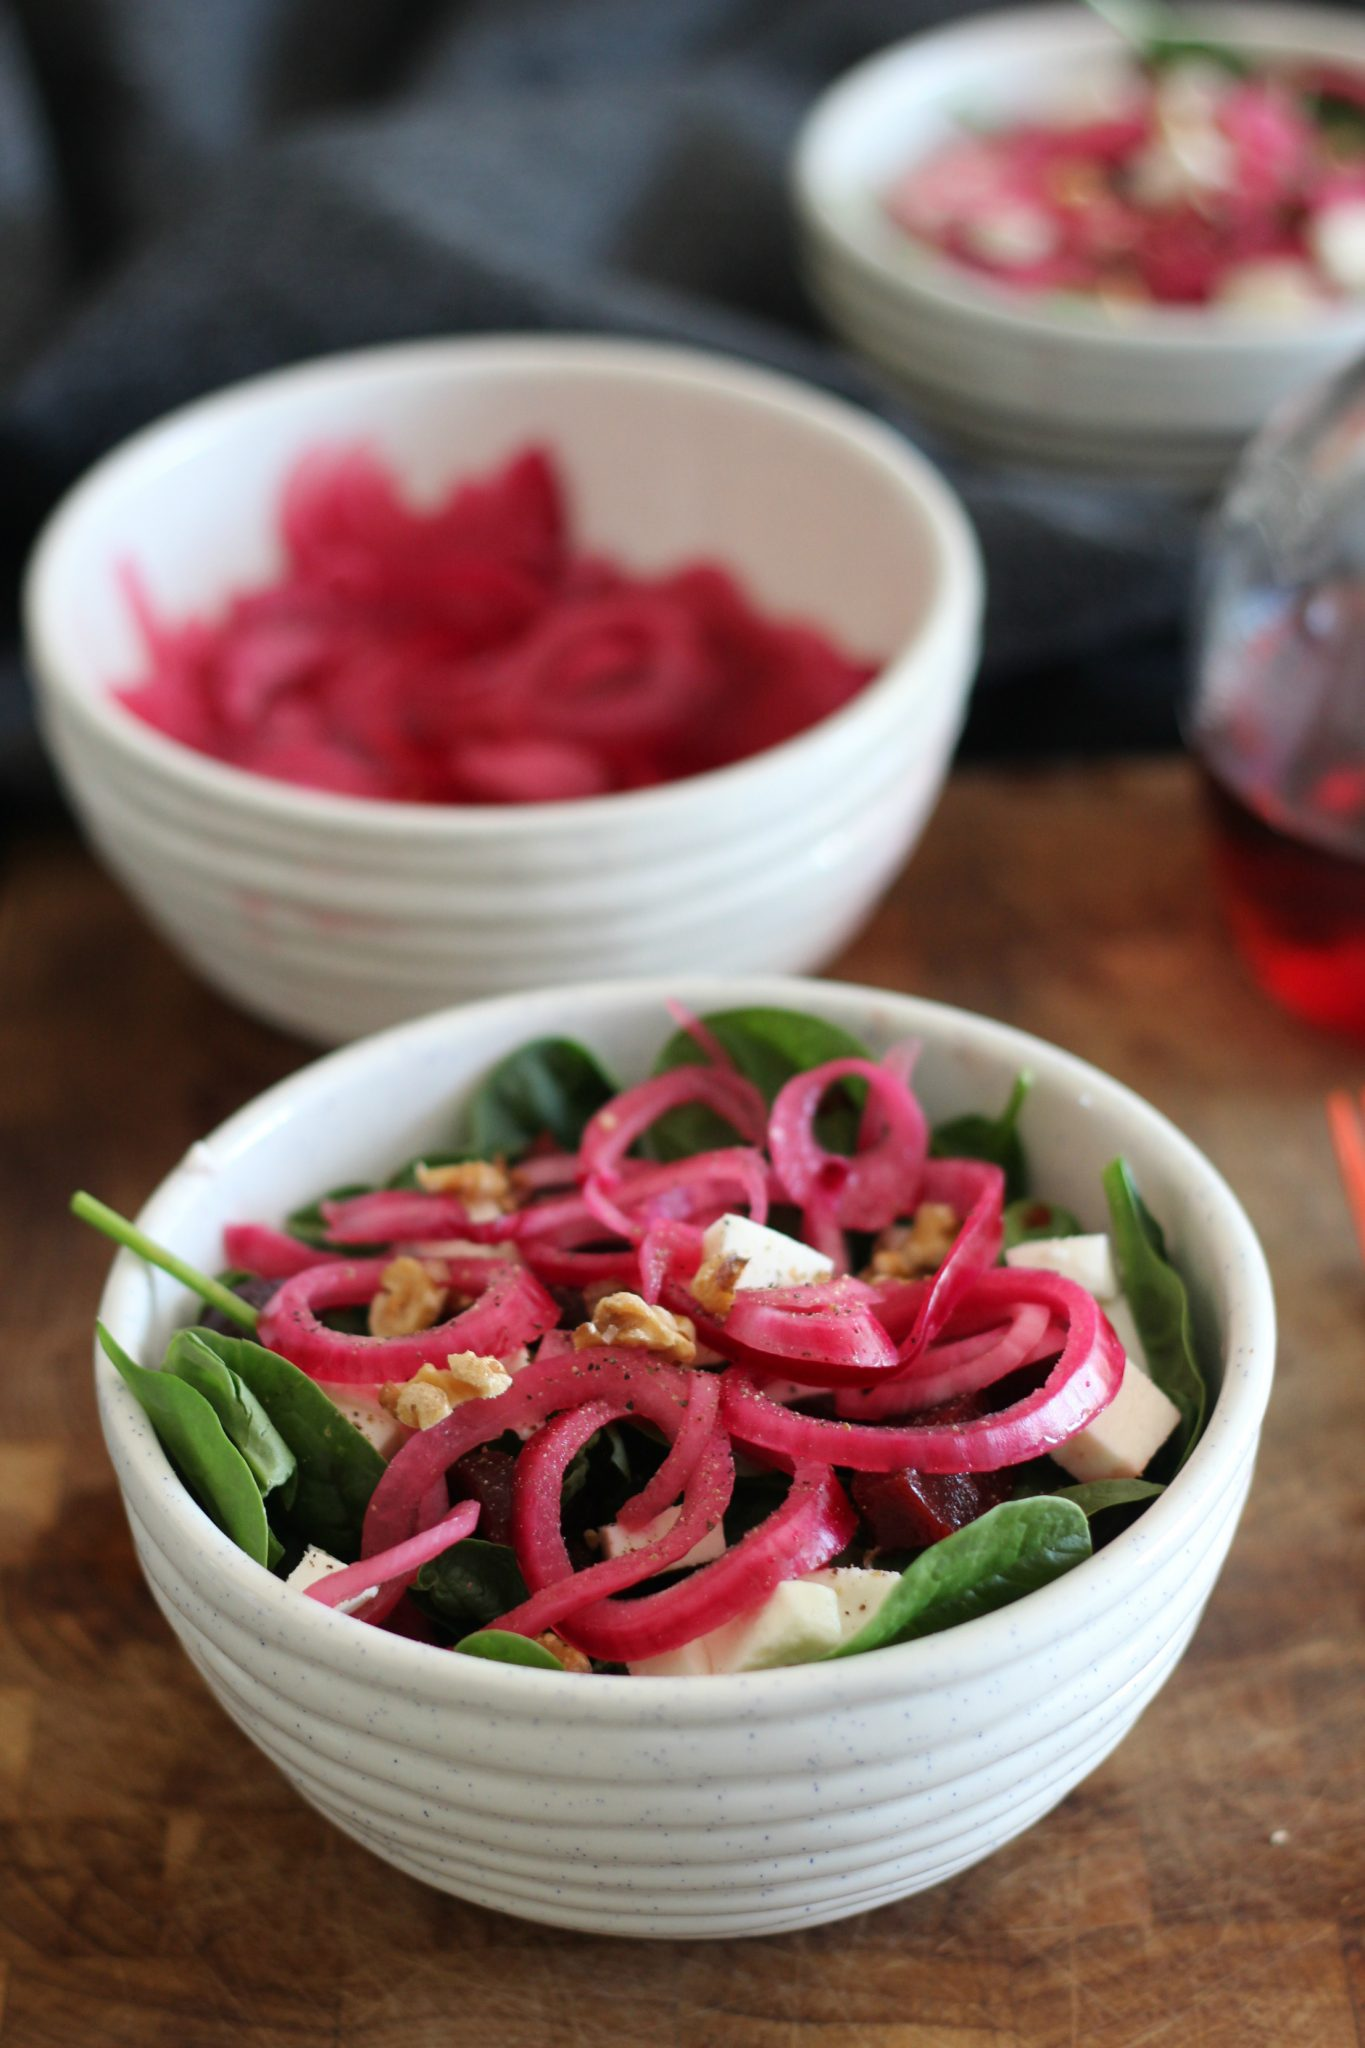 Beet and Spinach Salad with Red Onion Vinaigrette